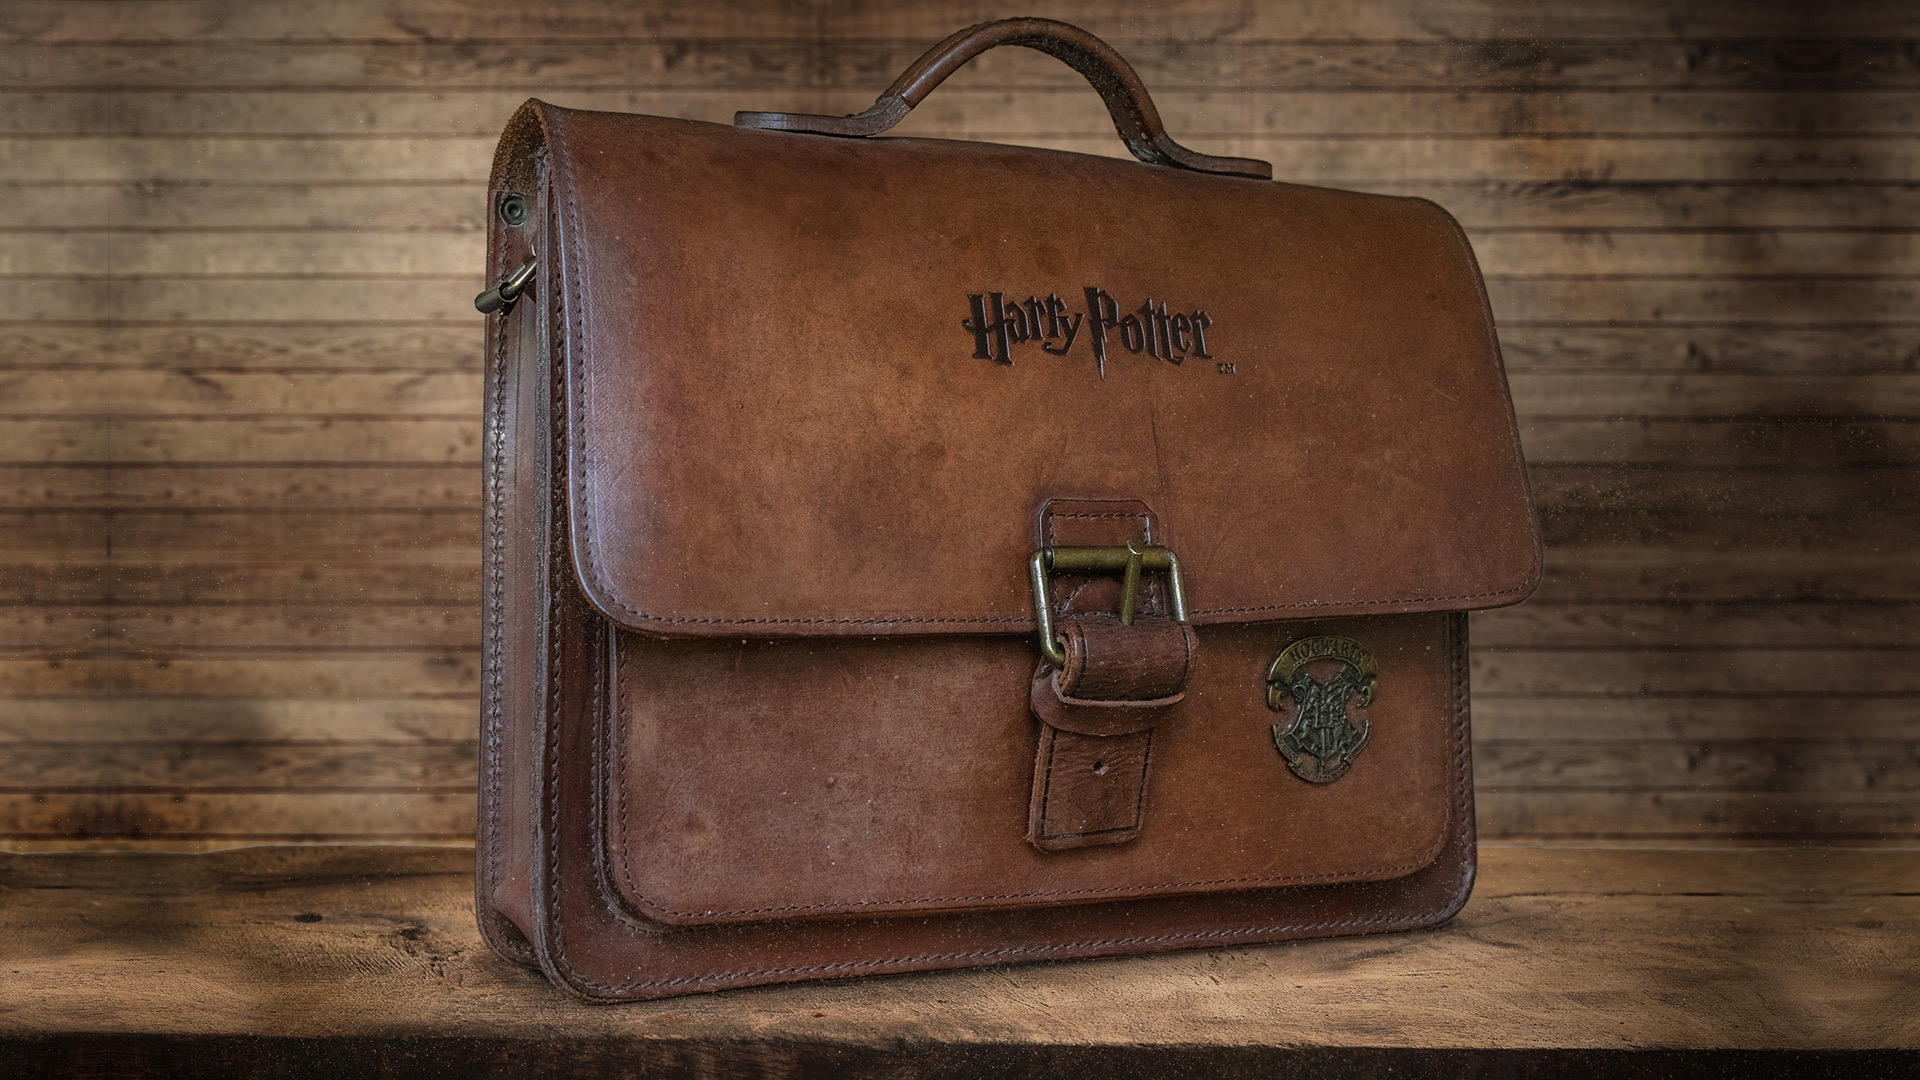 Officiel Harry Potter small satchel made by Ruitertassen.